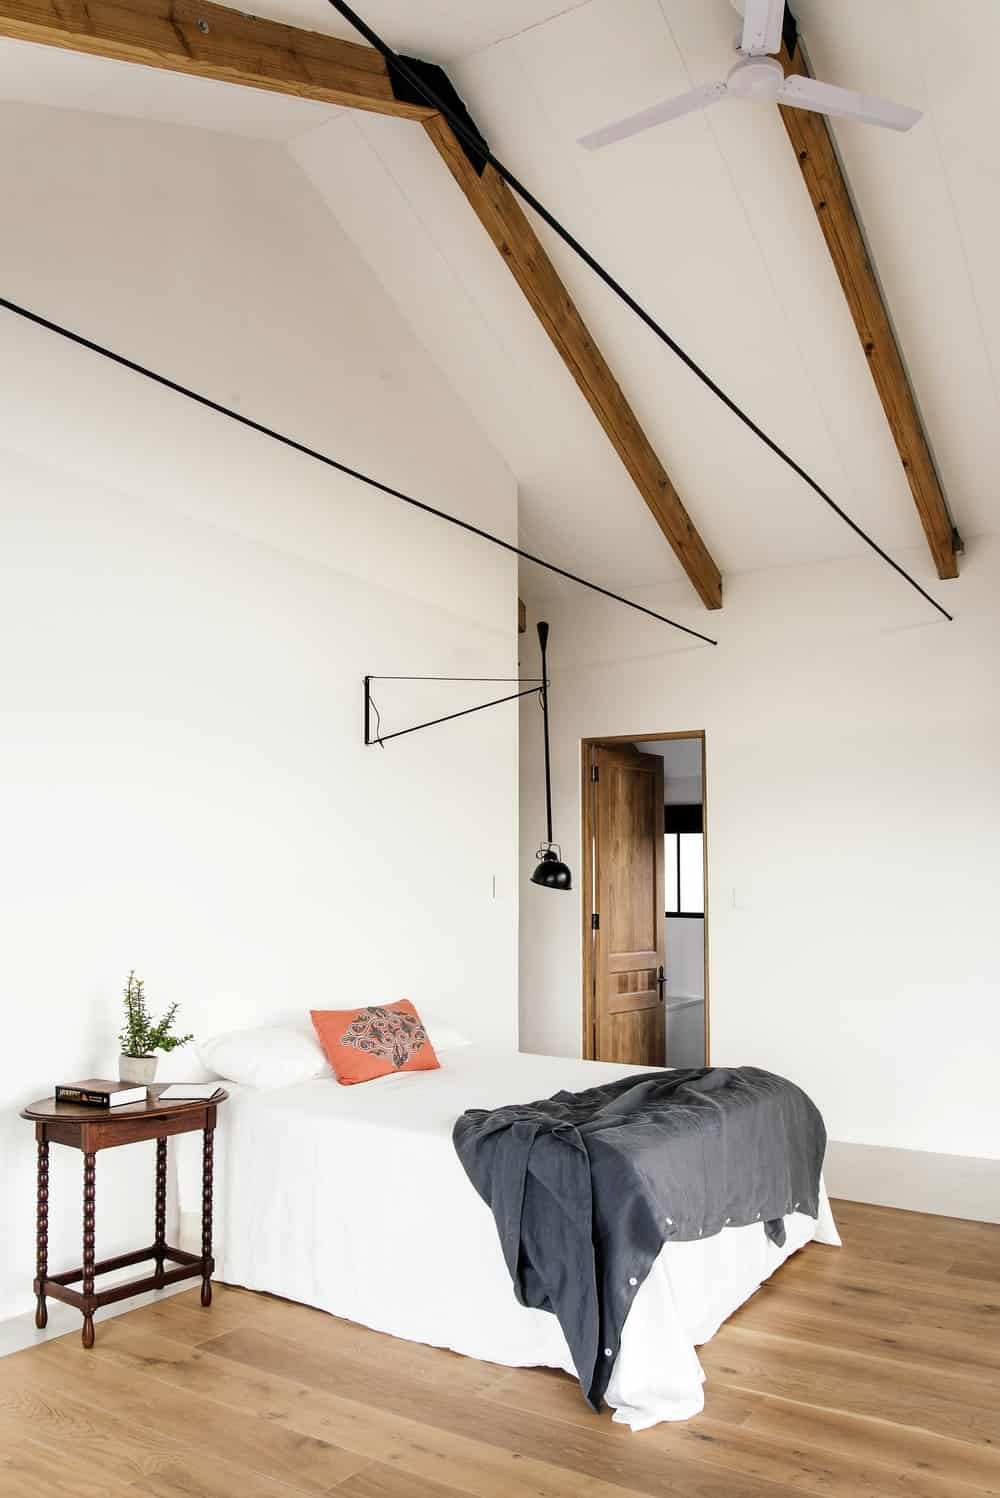 Bedroom in The Conservatory designed by Nadine Engelbrecht.